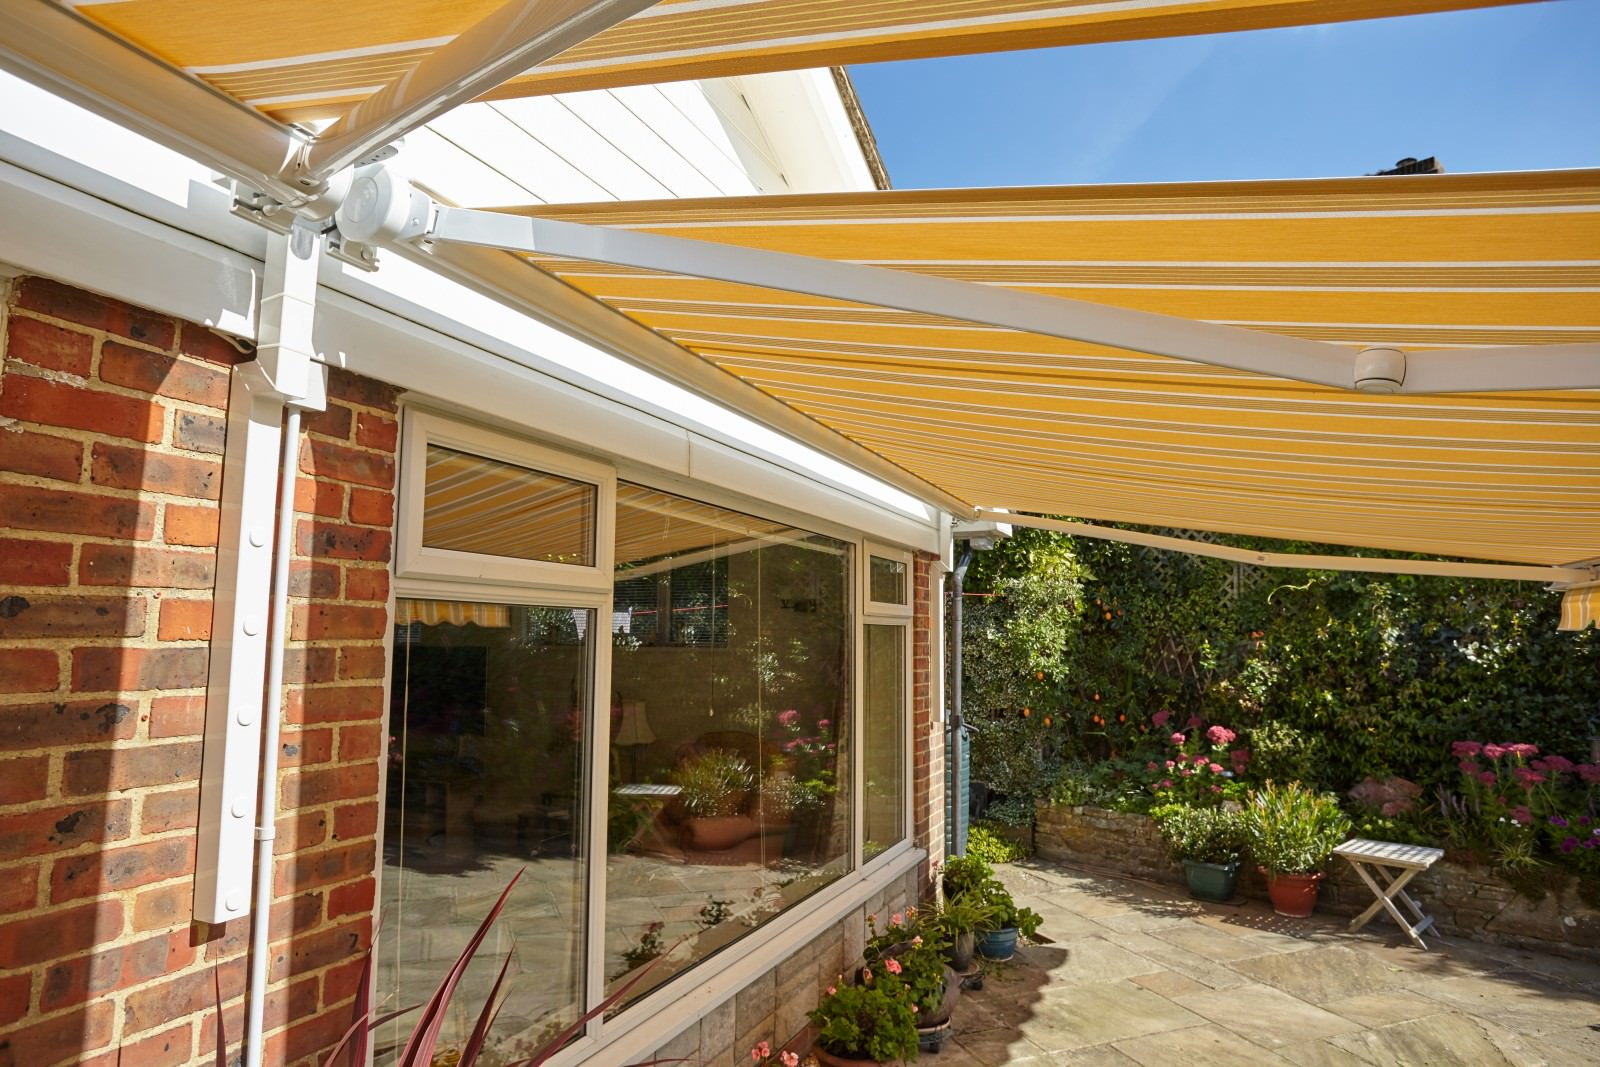 Patio Awnings Installed in Emsworth, Hampshire - Awningsouth